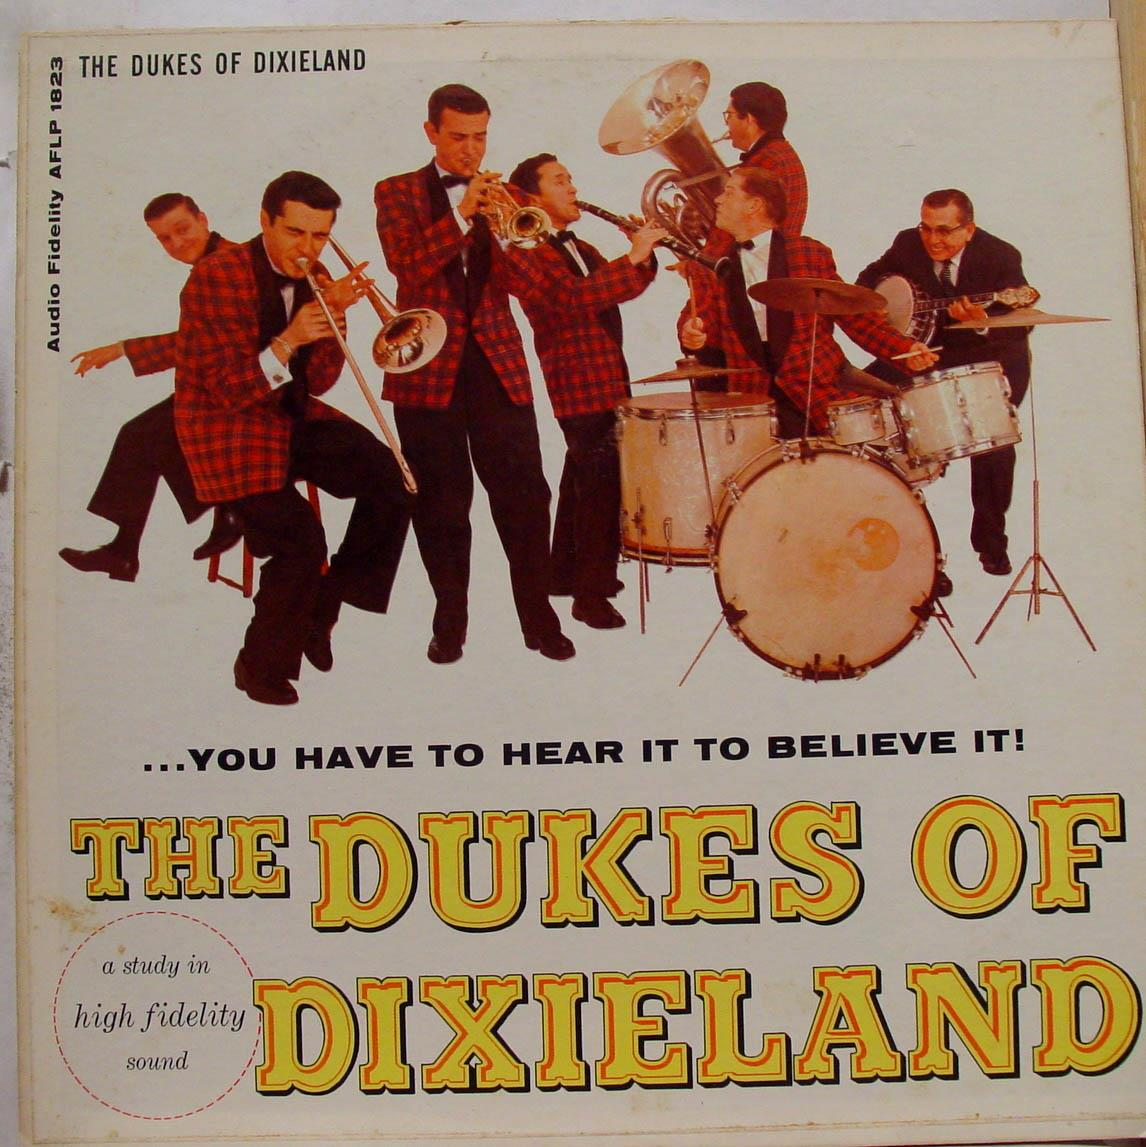 Dukes Of Dixieland - The Dukes Of Dixieland You Have To Hear It To Believe It Vol 1 Lp Vg Aflp 1823 (you Have To Hear It